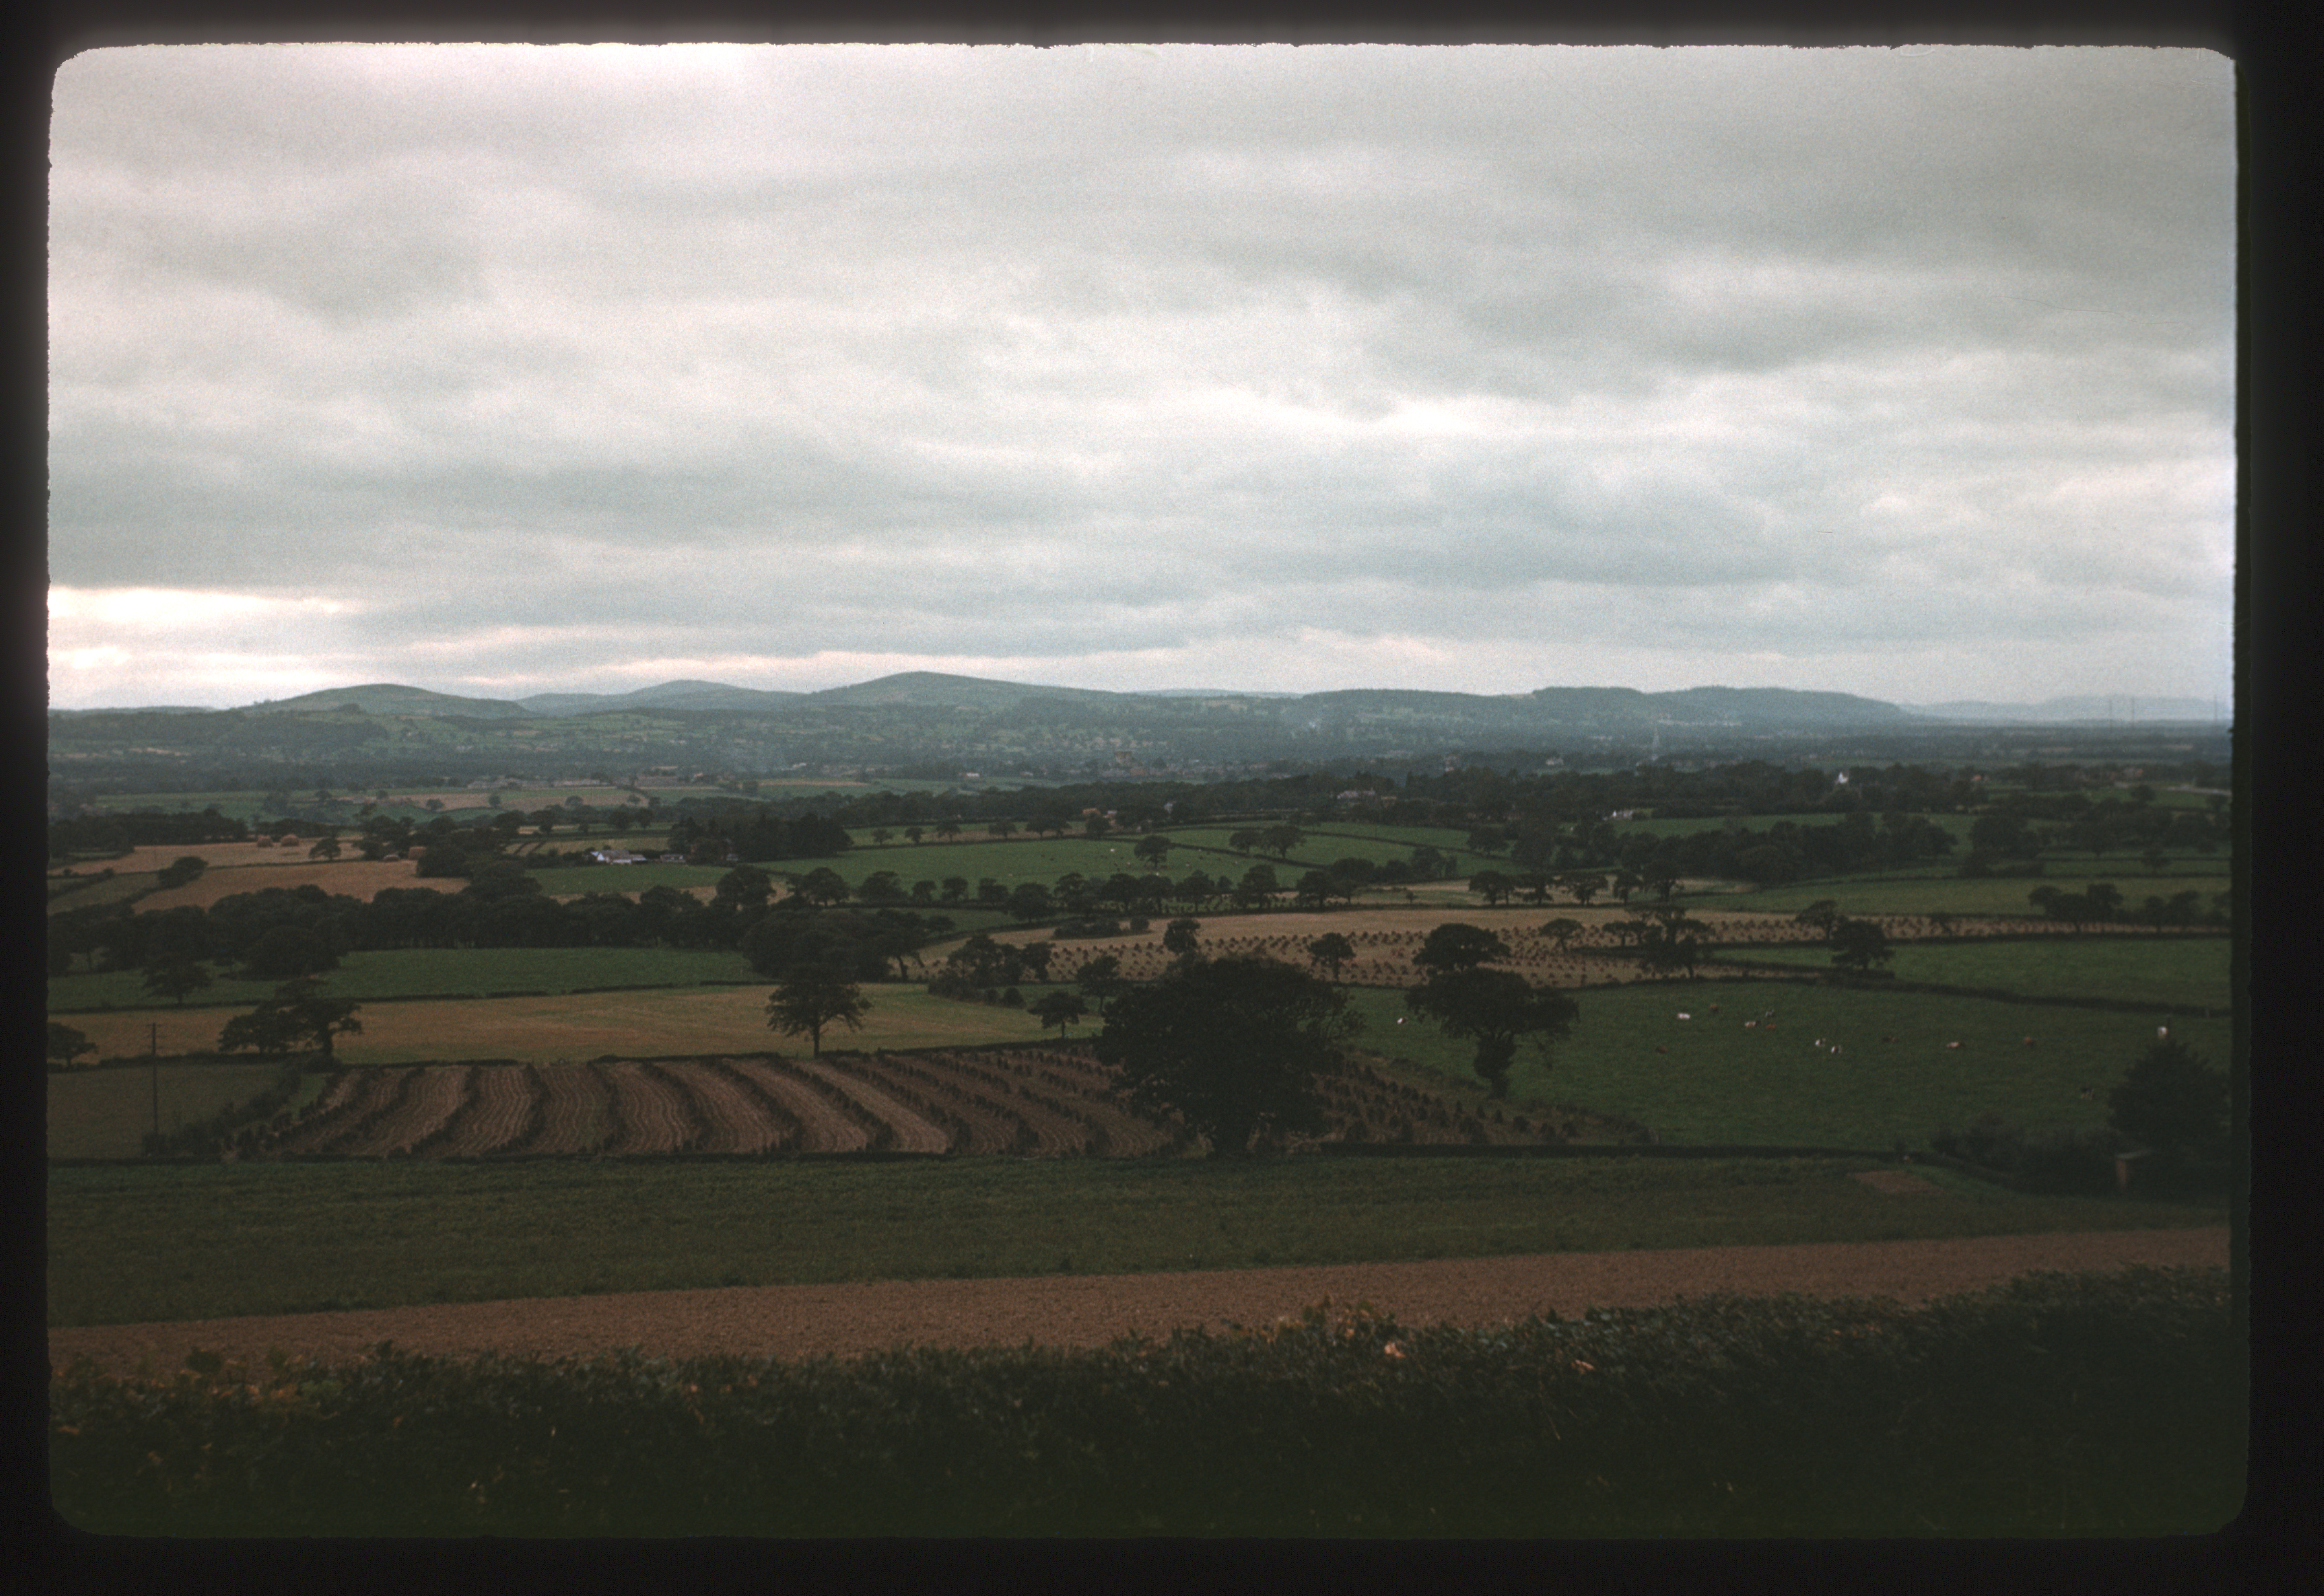 photograph of Clwyd Valley, w. Stooks, dull sky